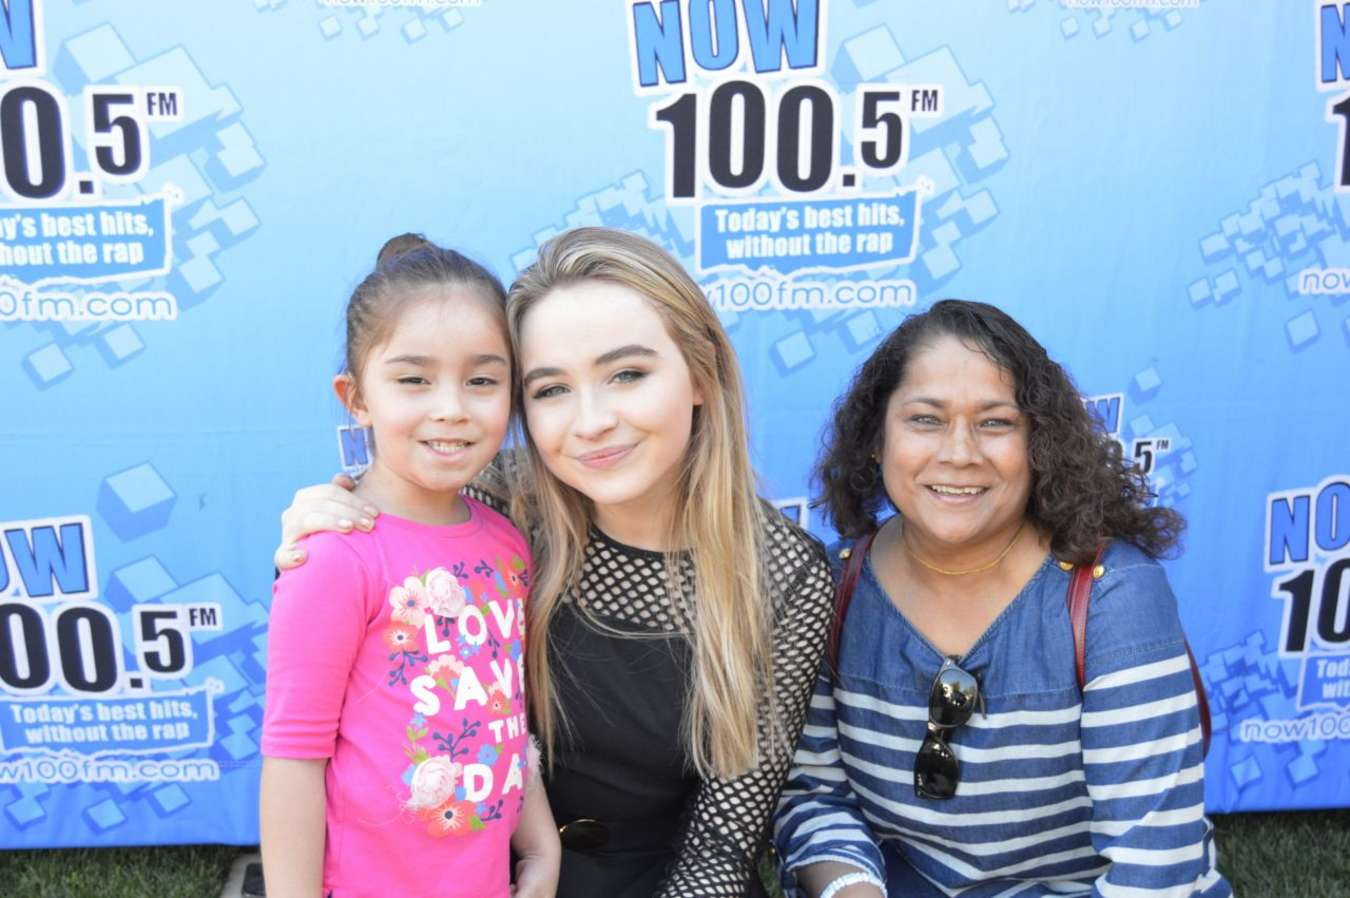 Sabrina carpenter now100 fm meet and greet in sacramento 10 gotceleb sabrina carpenter now100 fm meet and greet in sacramento 10 full size kristyandbryce Gallery